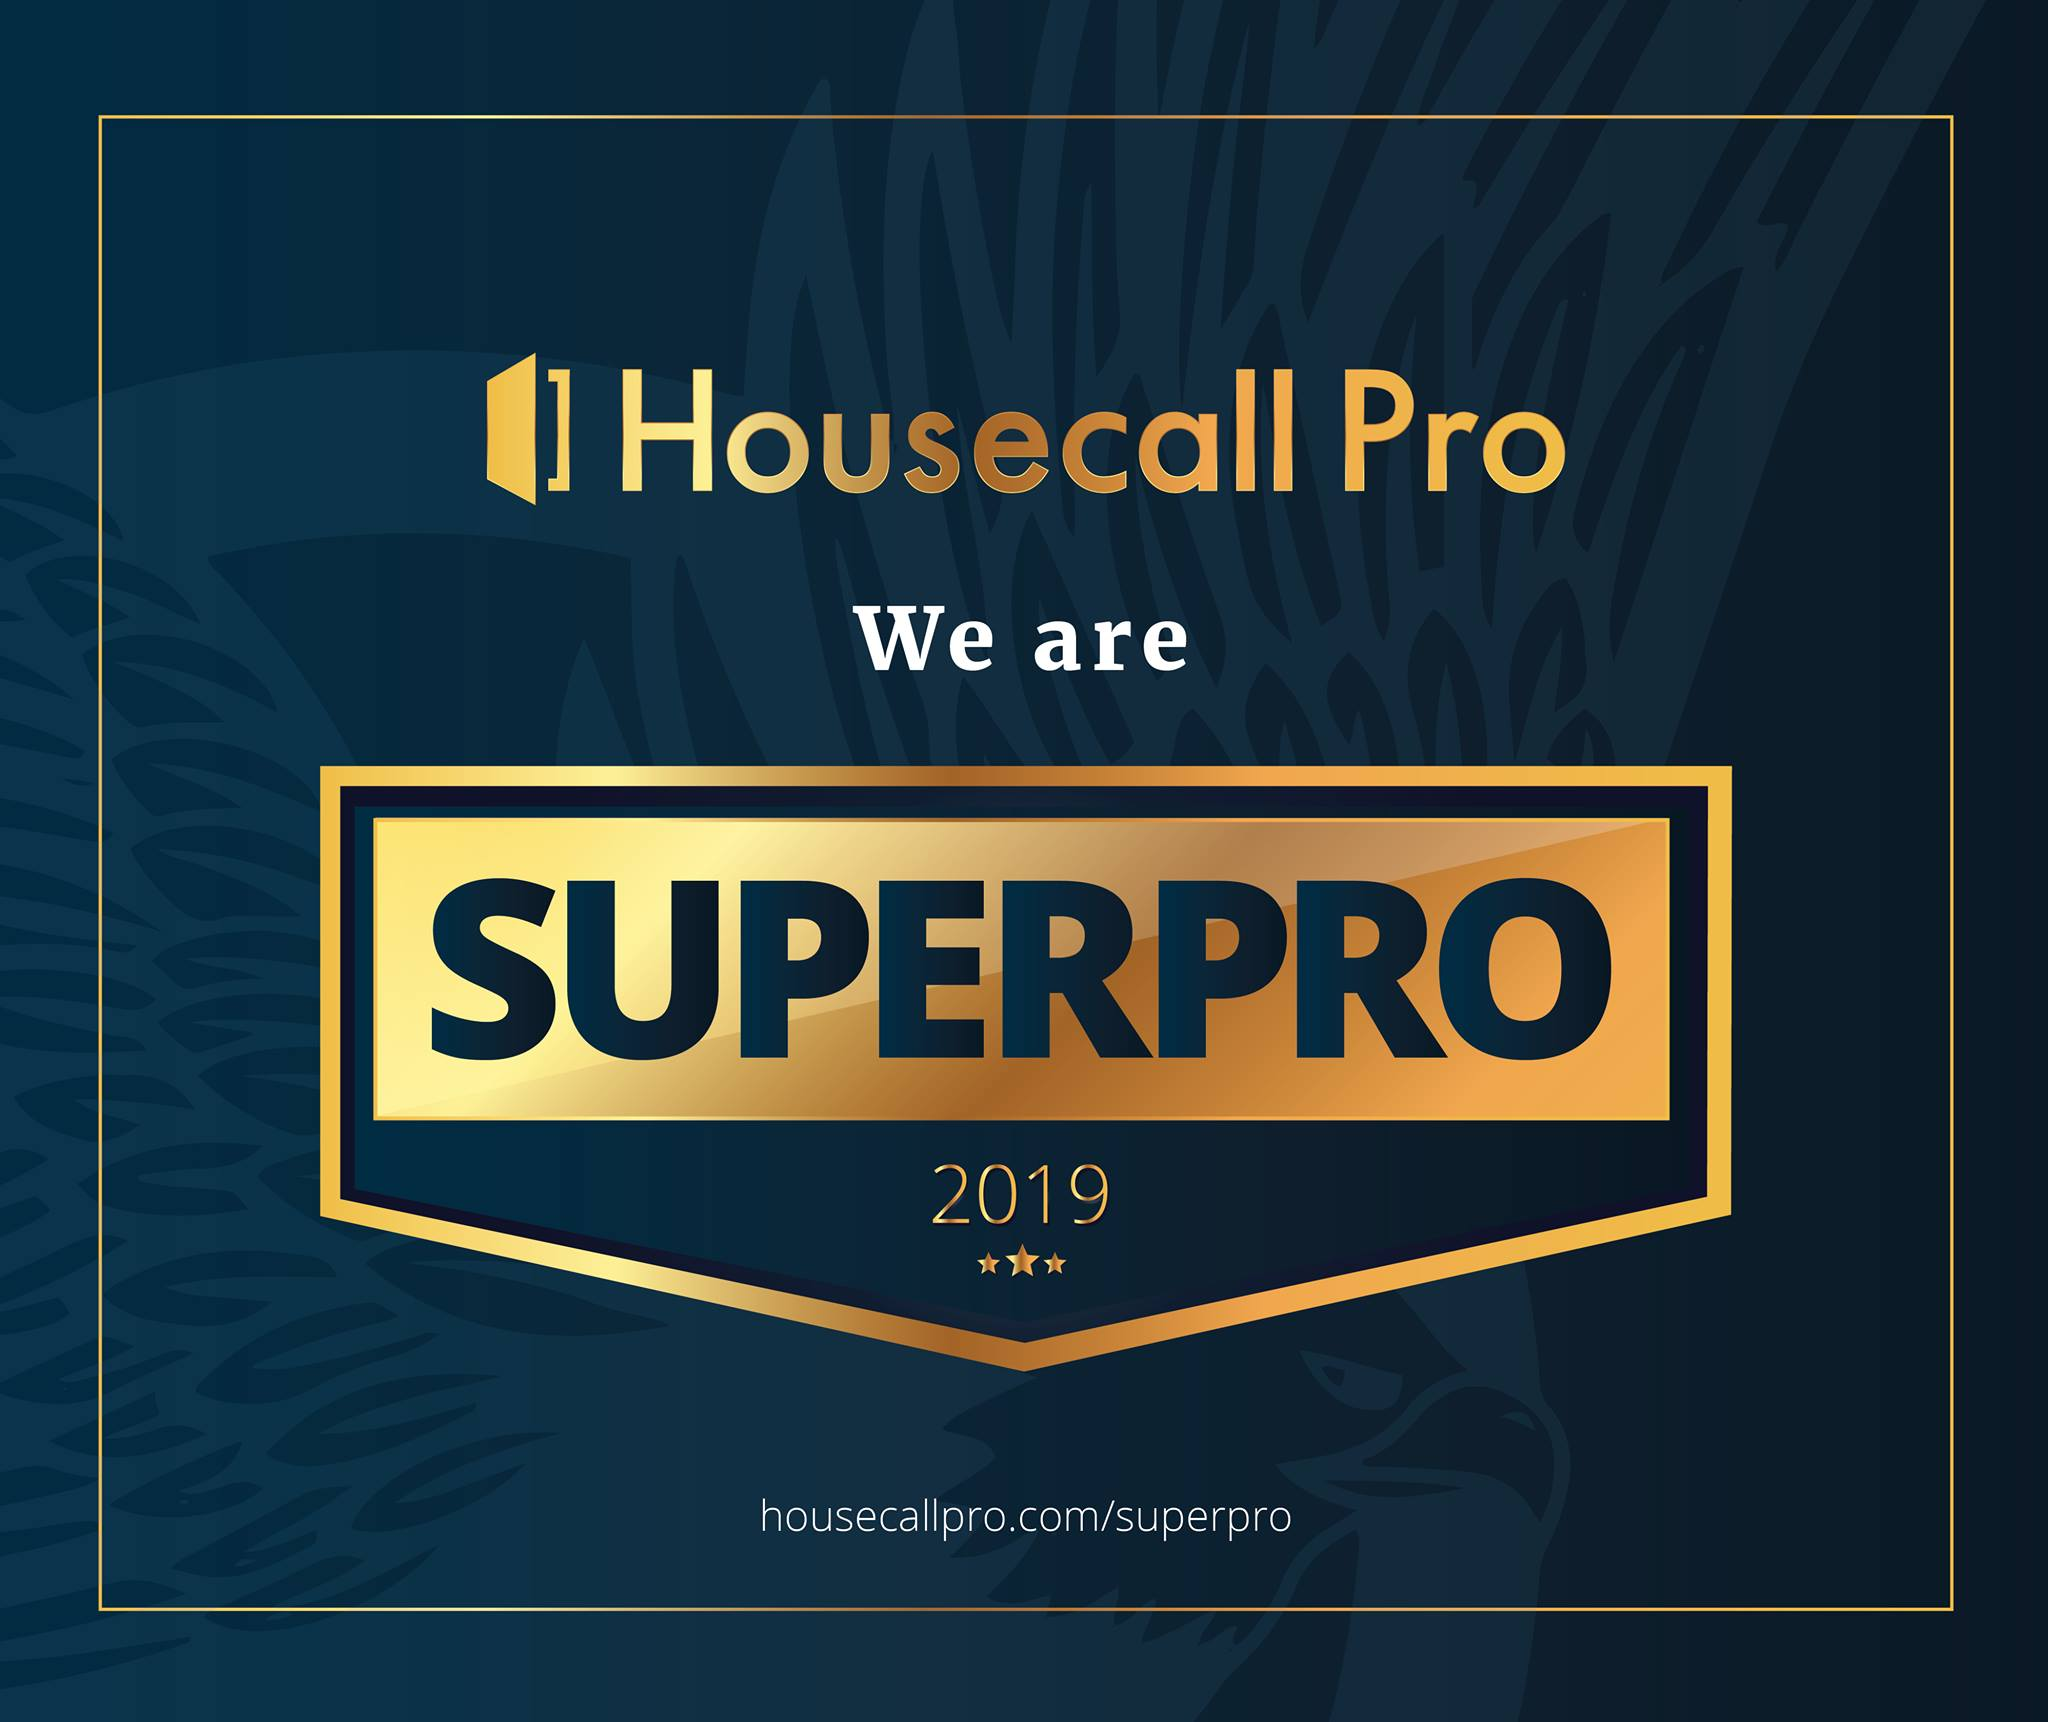 Airtegrity have been awarded the Housecall Pro Superpro award for 2019